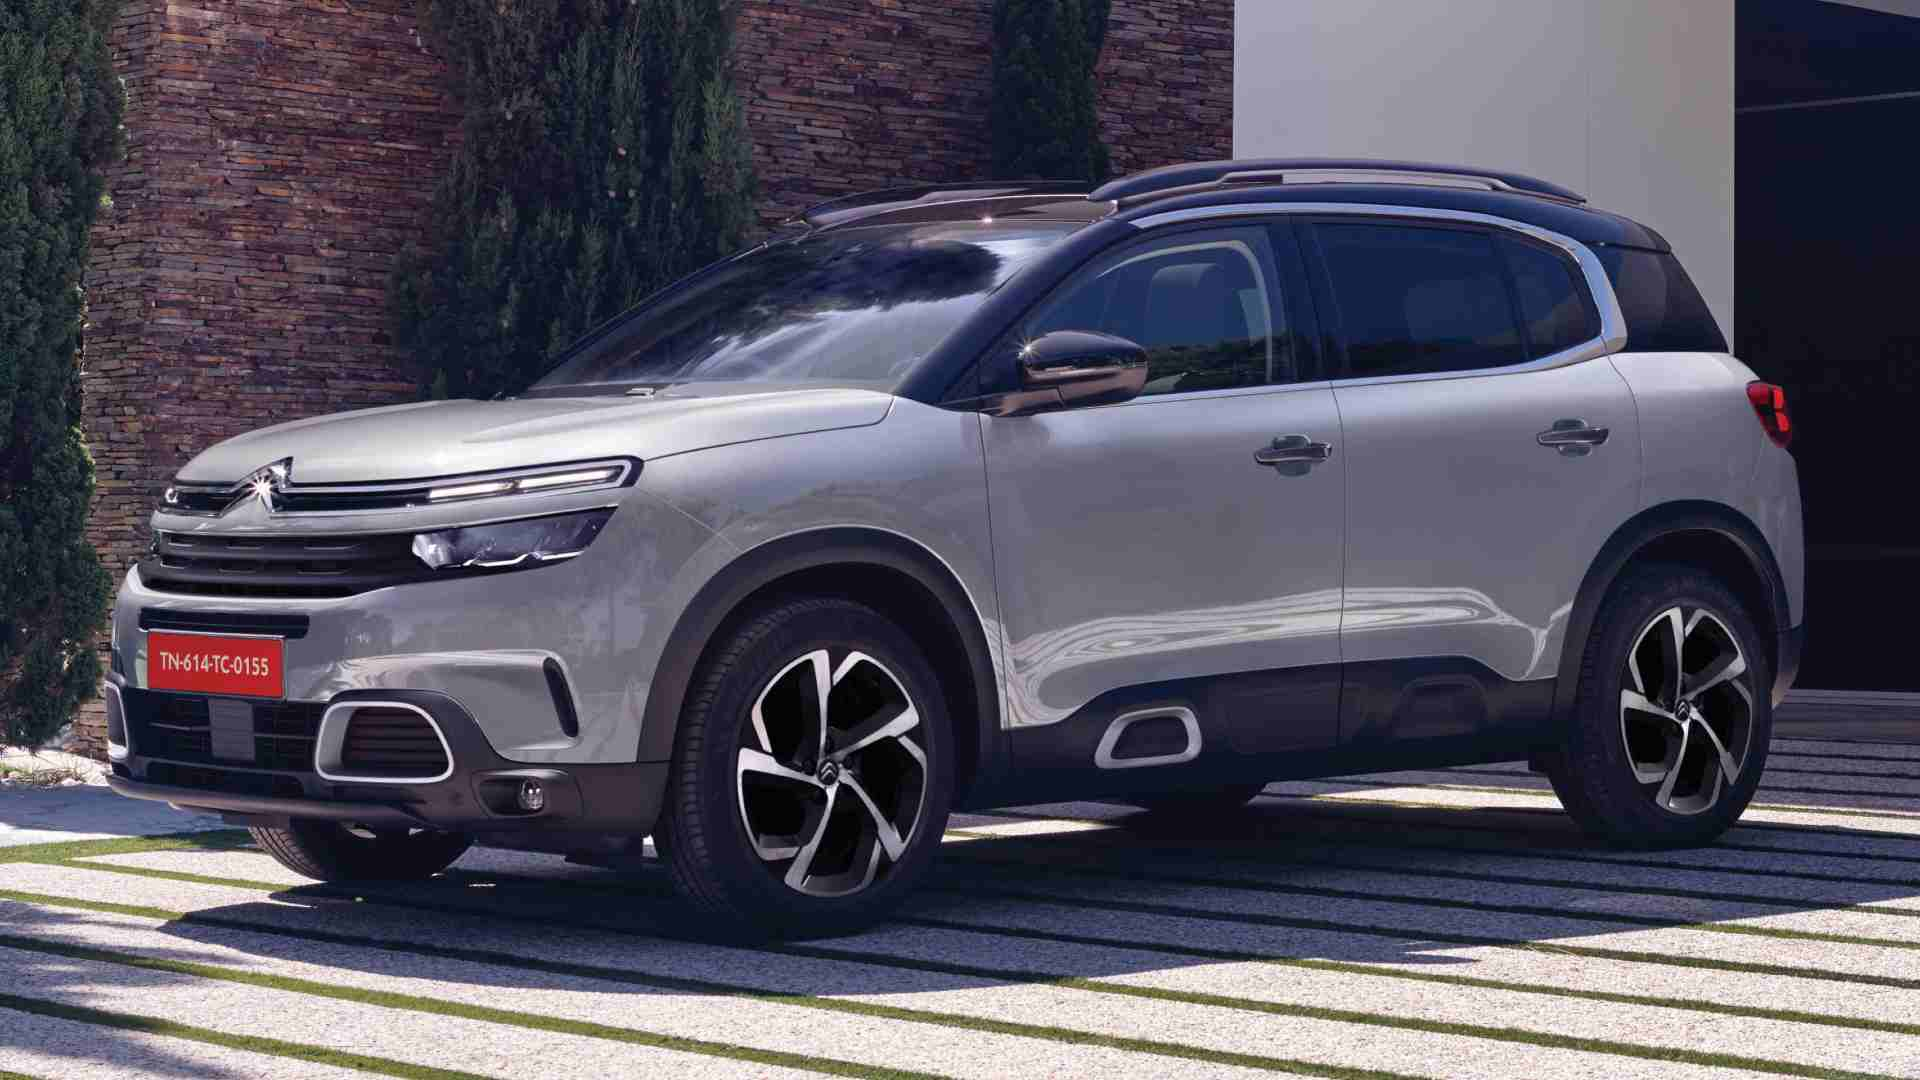 The Citroen C5 Aircross' price in India goes up to Rs 31.90 lakh (introductory, ex-showroom, Delhi). Image: Citroen